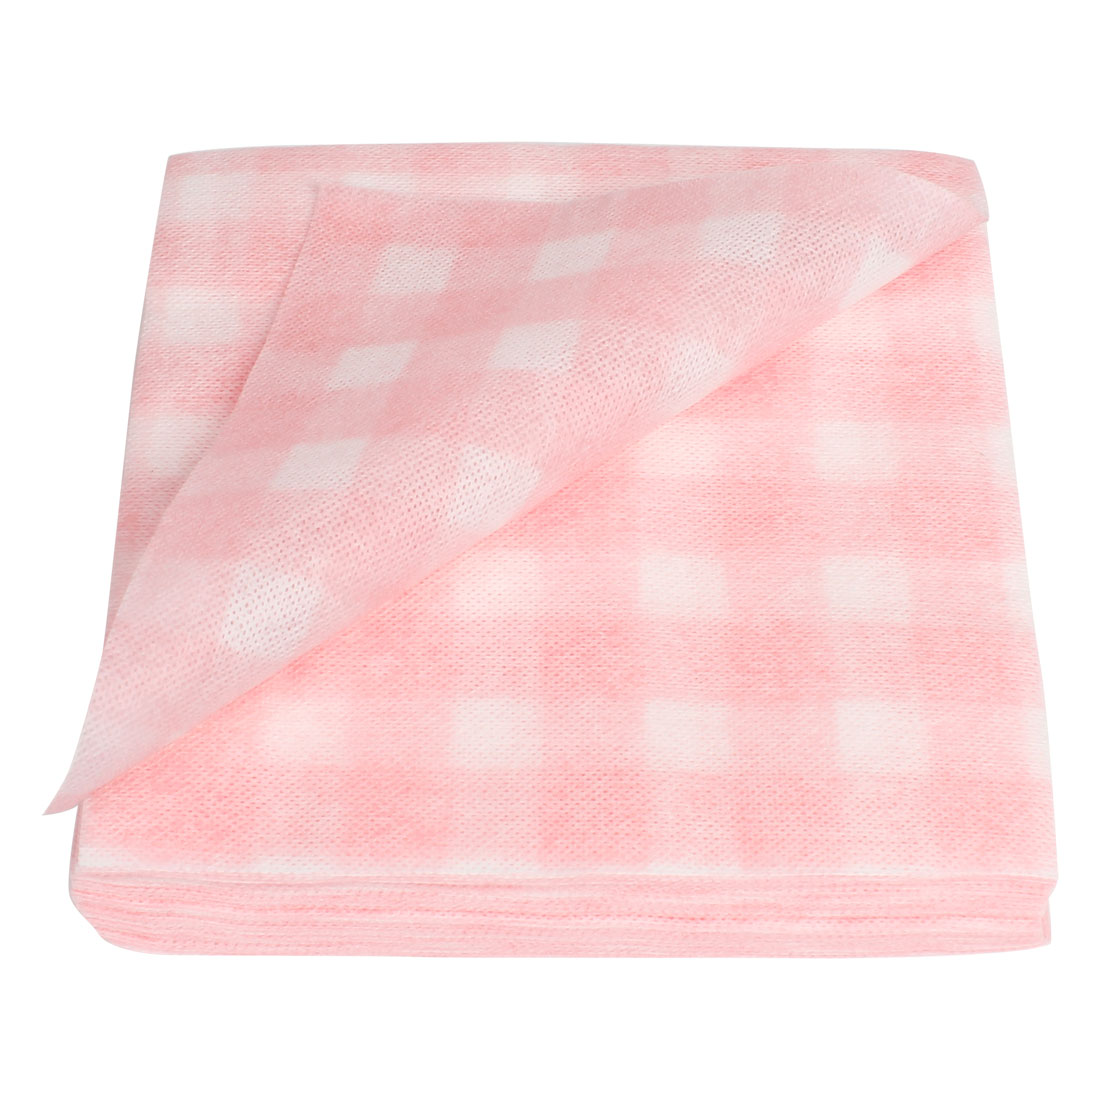 Portable Pink White Non-woven Wash Cloth Diaposable Towels 60 in 1